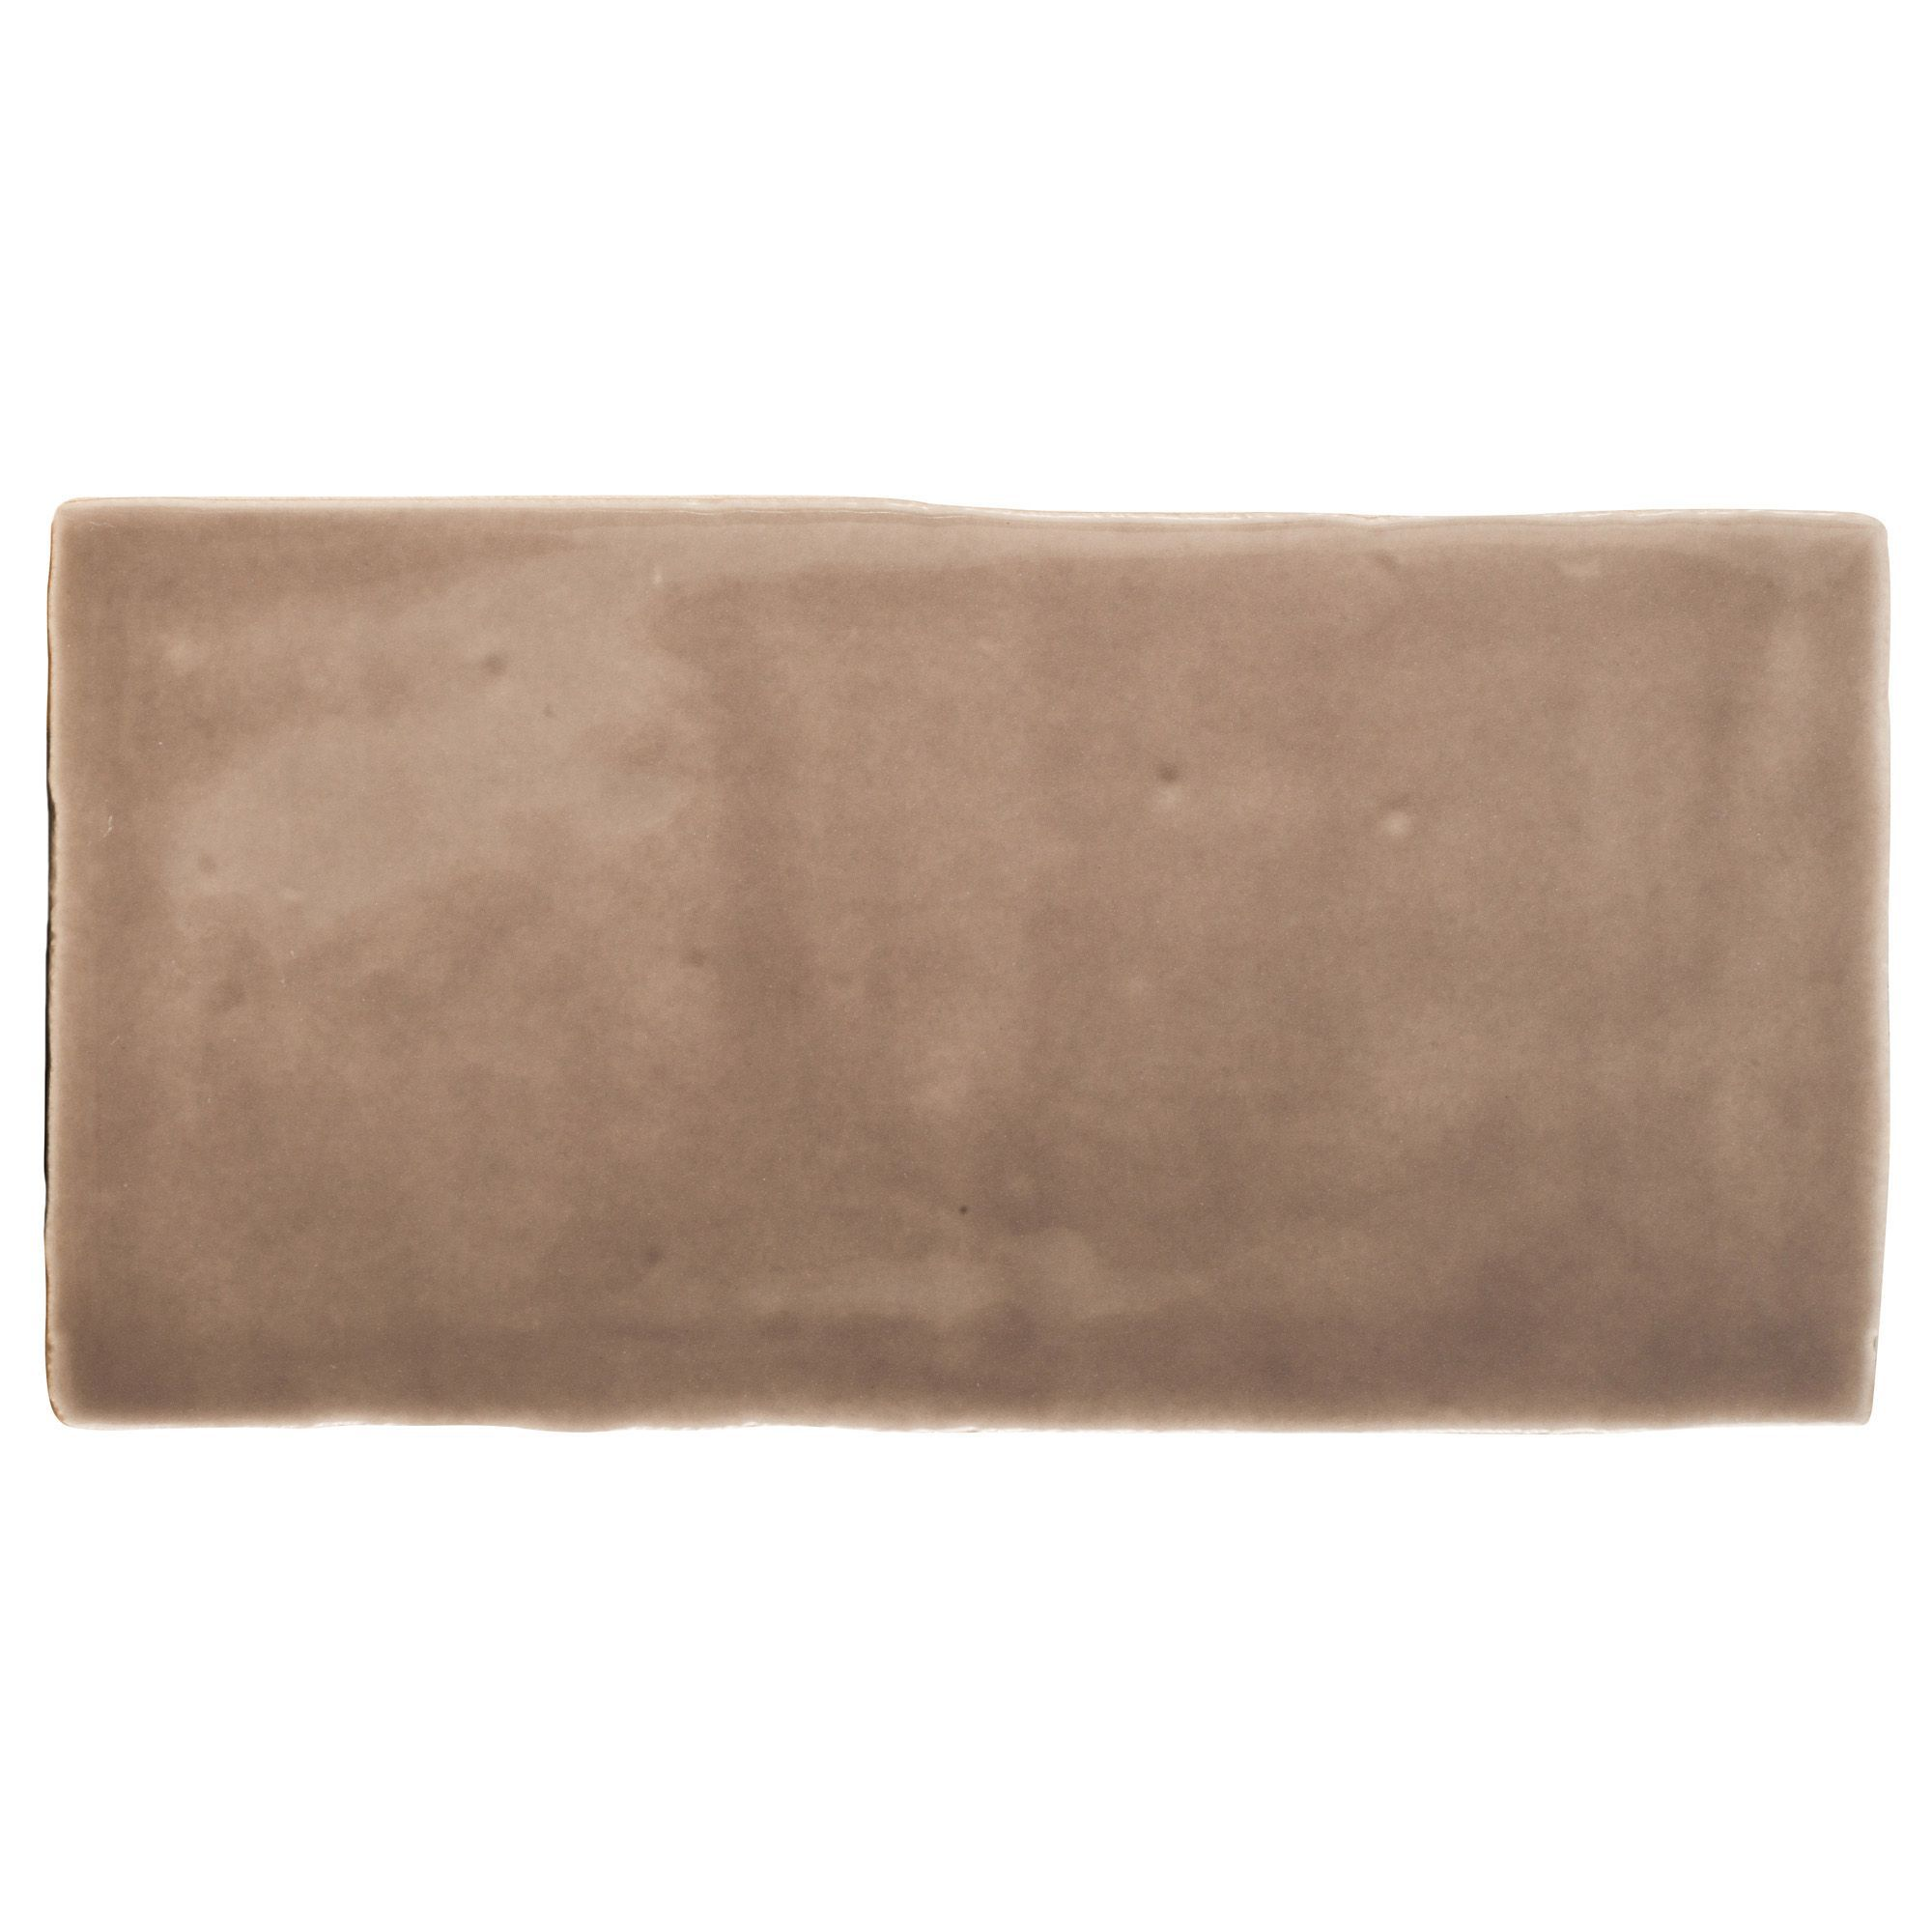 Padstow Taupe Ceramic Wall Tile, Pack Of 44, (l)150mm (w)75mm